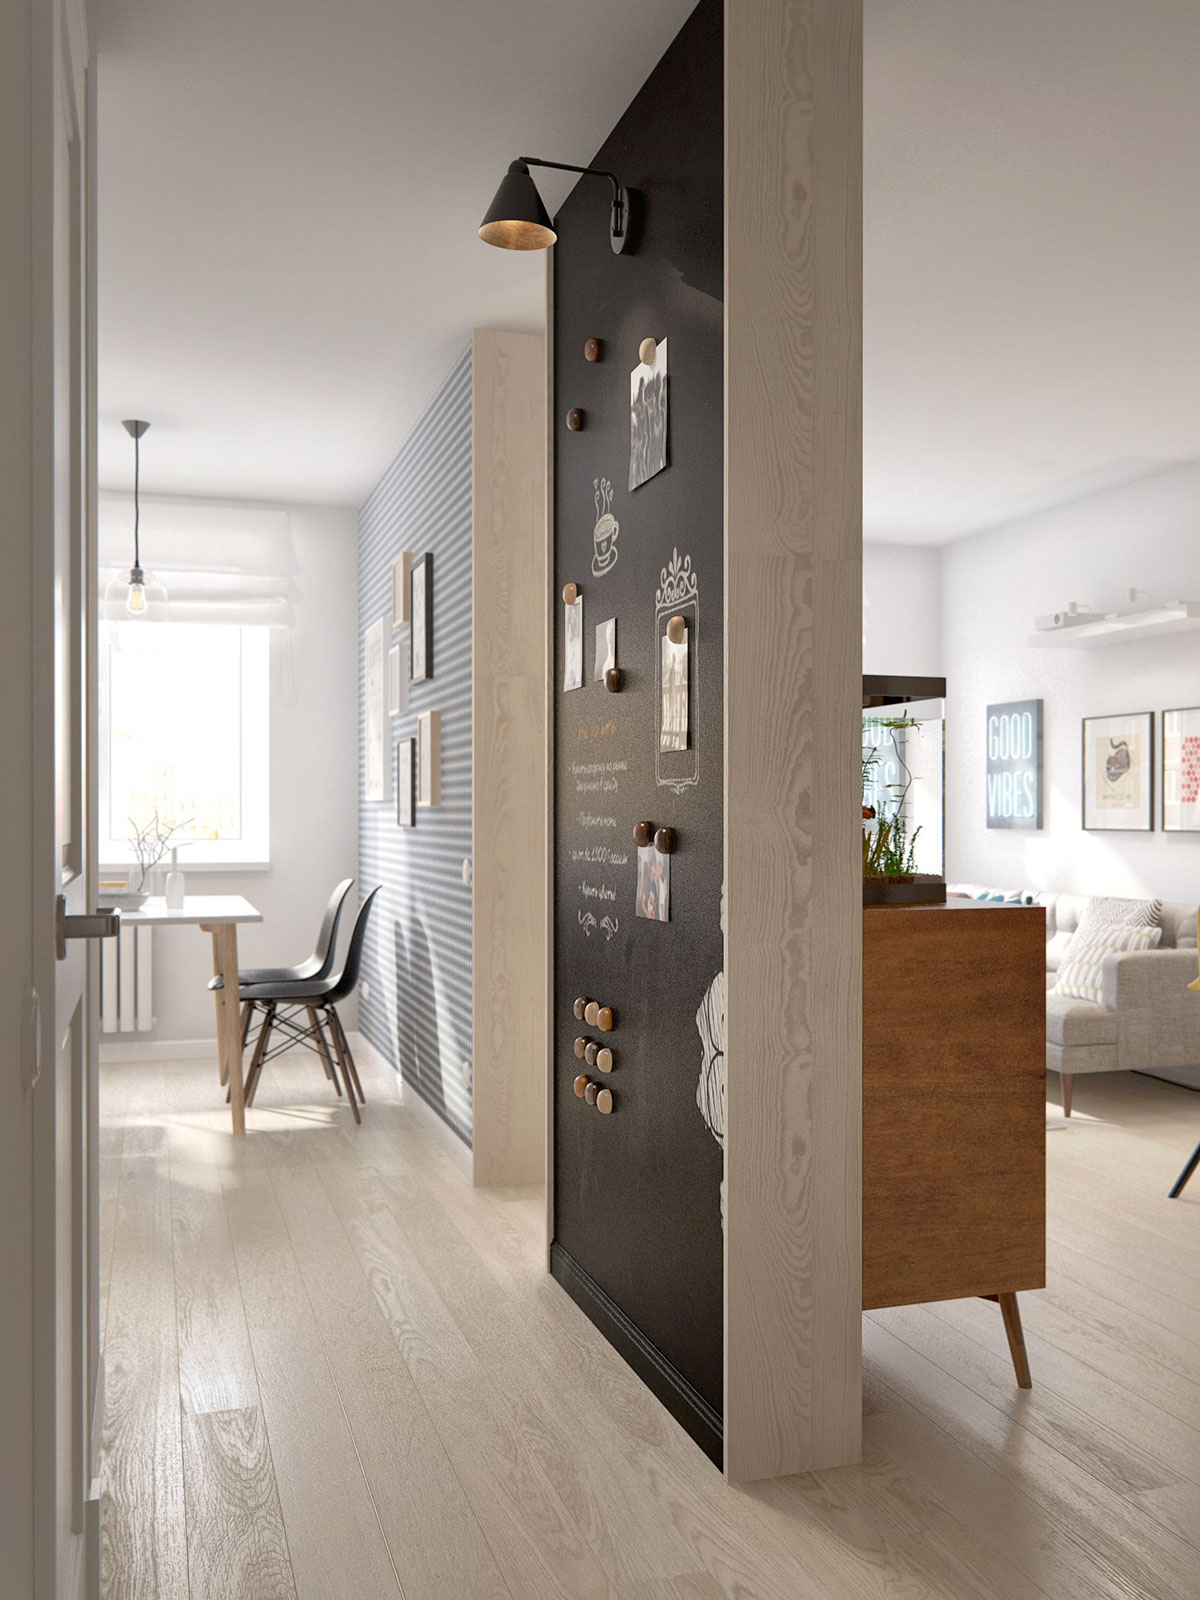 Magnetic Wall - A midcentury inspired apartment with scandinavian tendencies